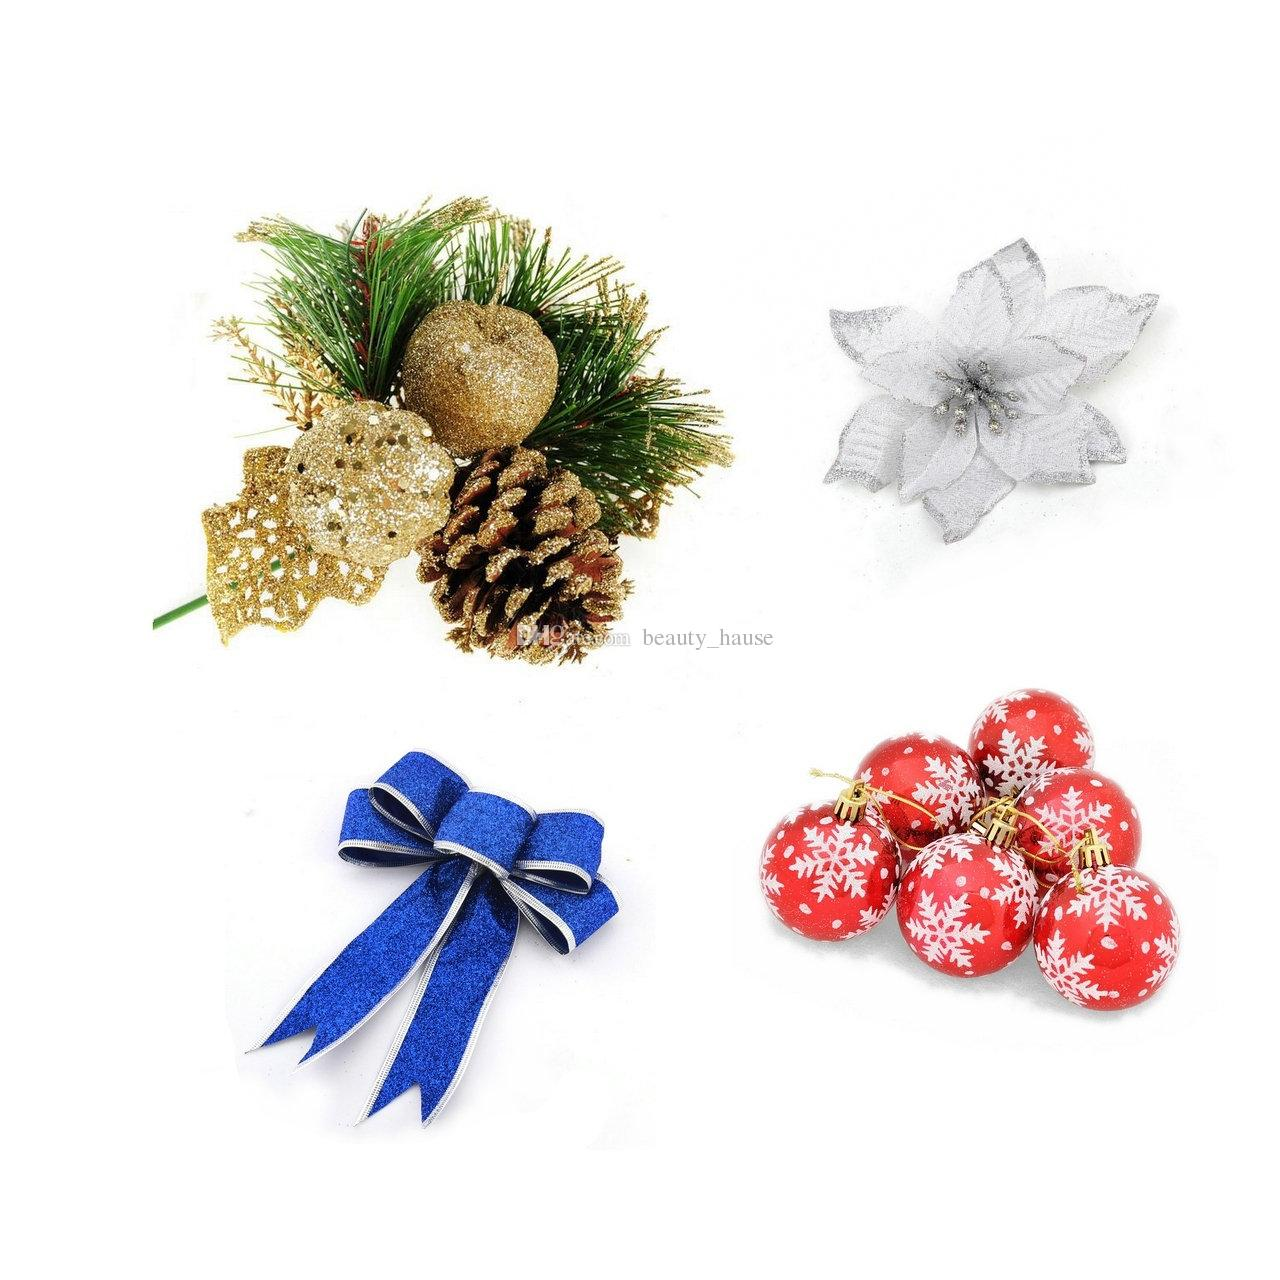 poinsettia christmas ballsartificial flowersbowknotspine cones ornaments for christmas tree decorations party supplies random color discount christmas - Poinsettia Christmas Tree Decorations